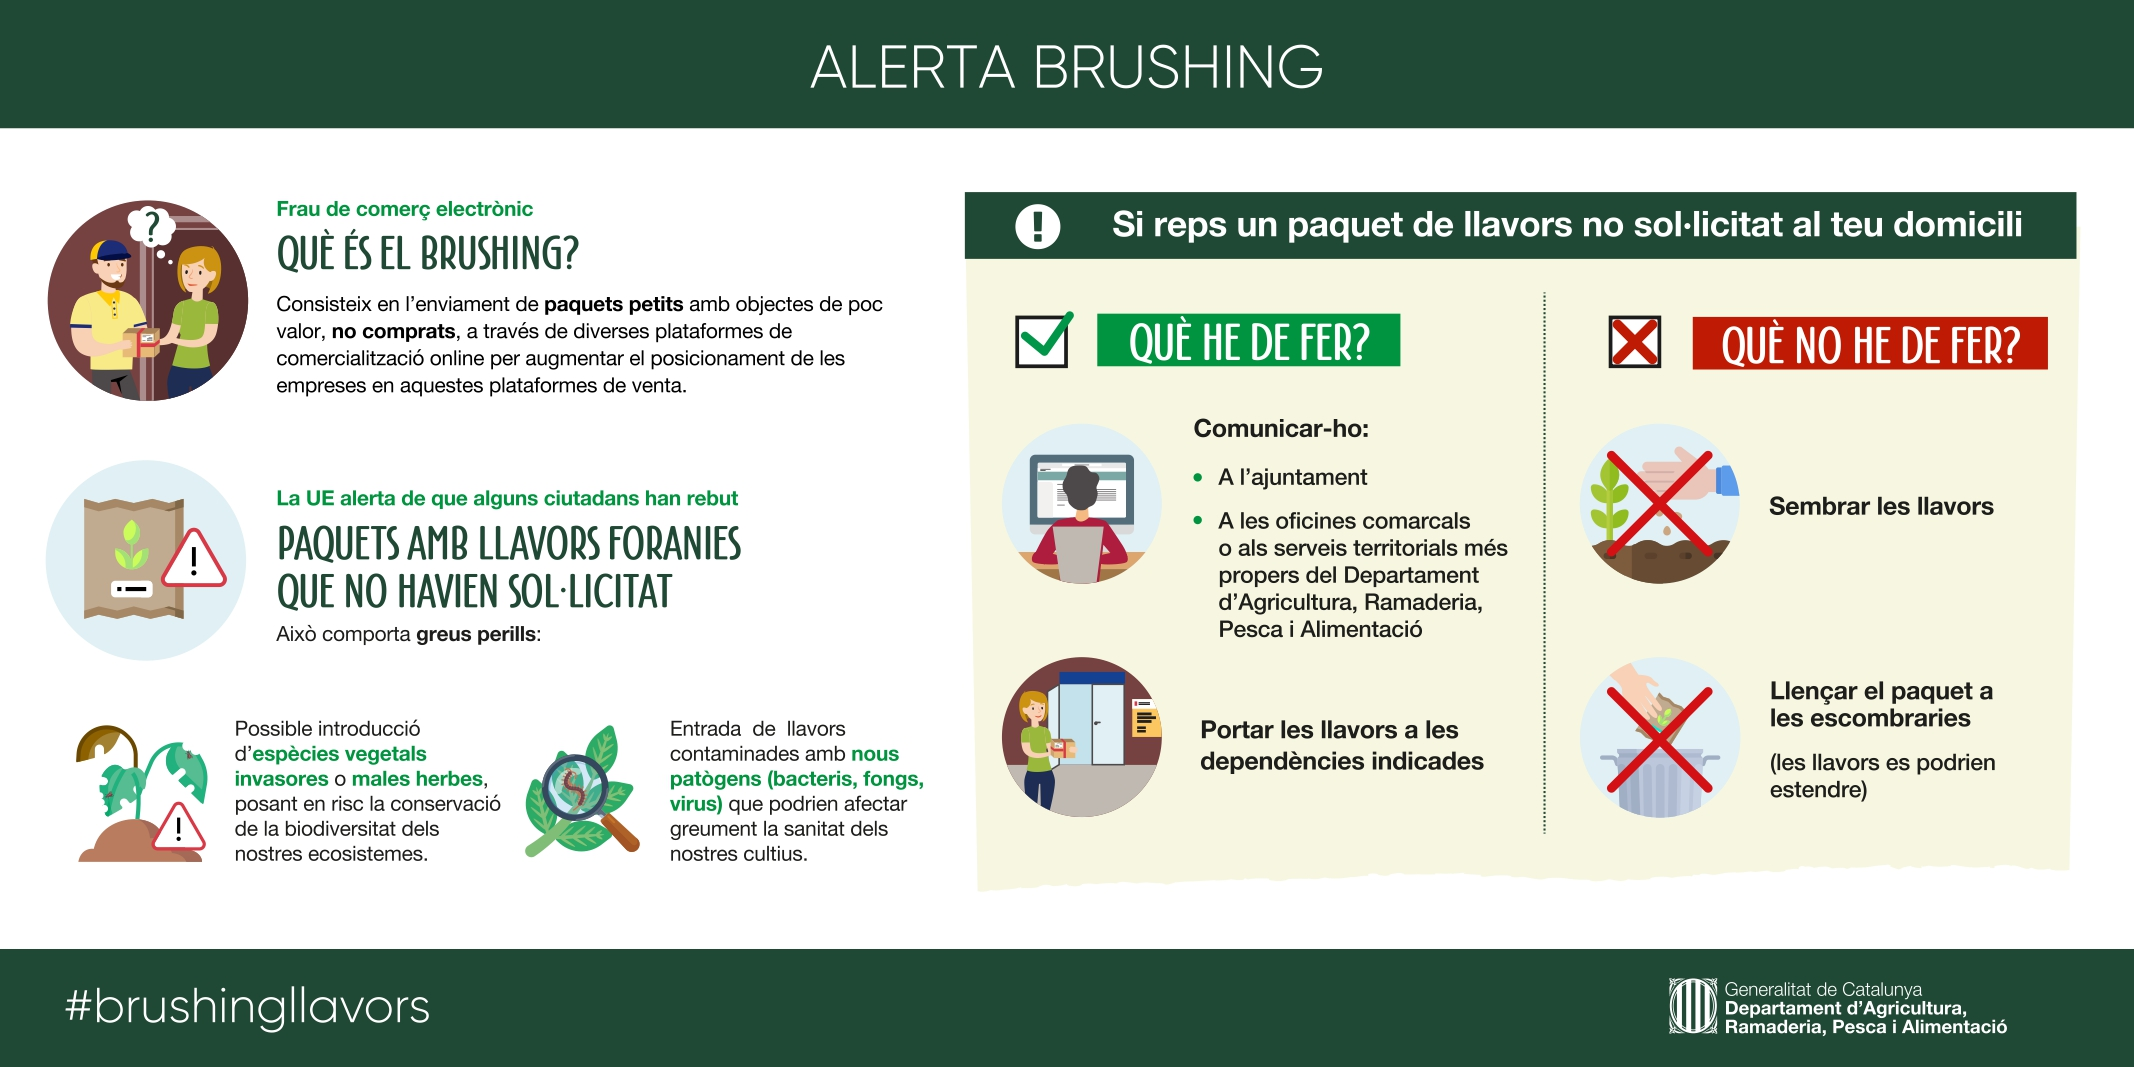 ALERTA BRUSHING_pages-to-jpg-0001